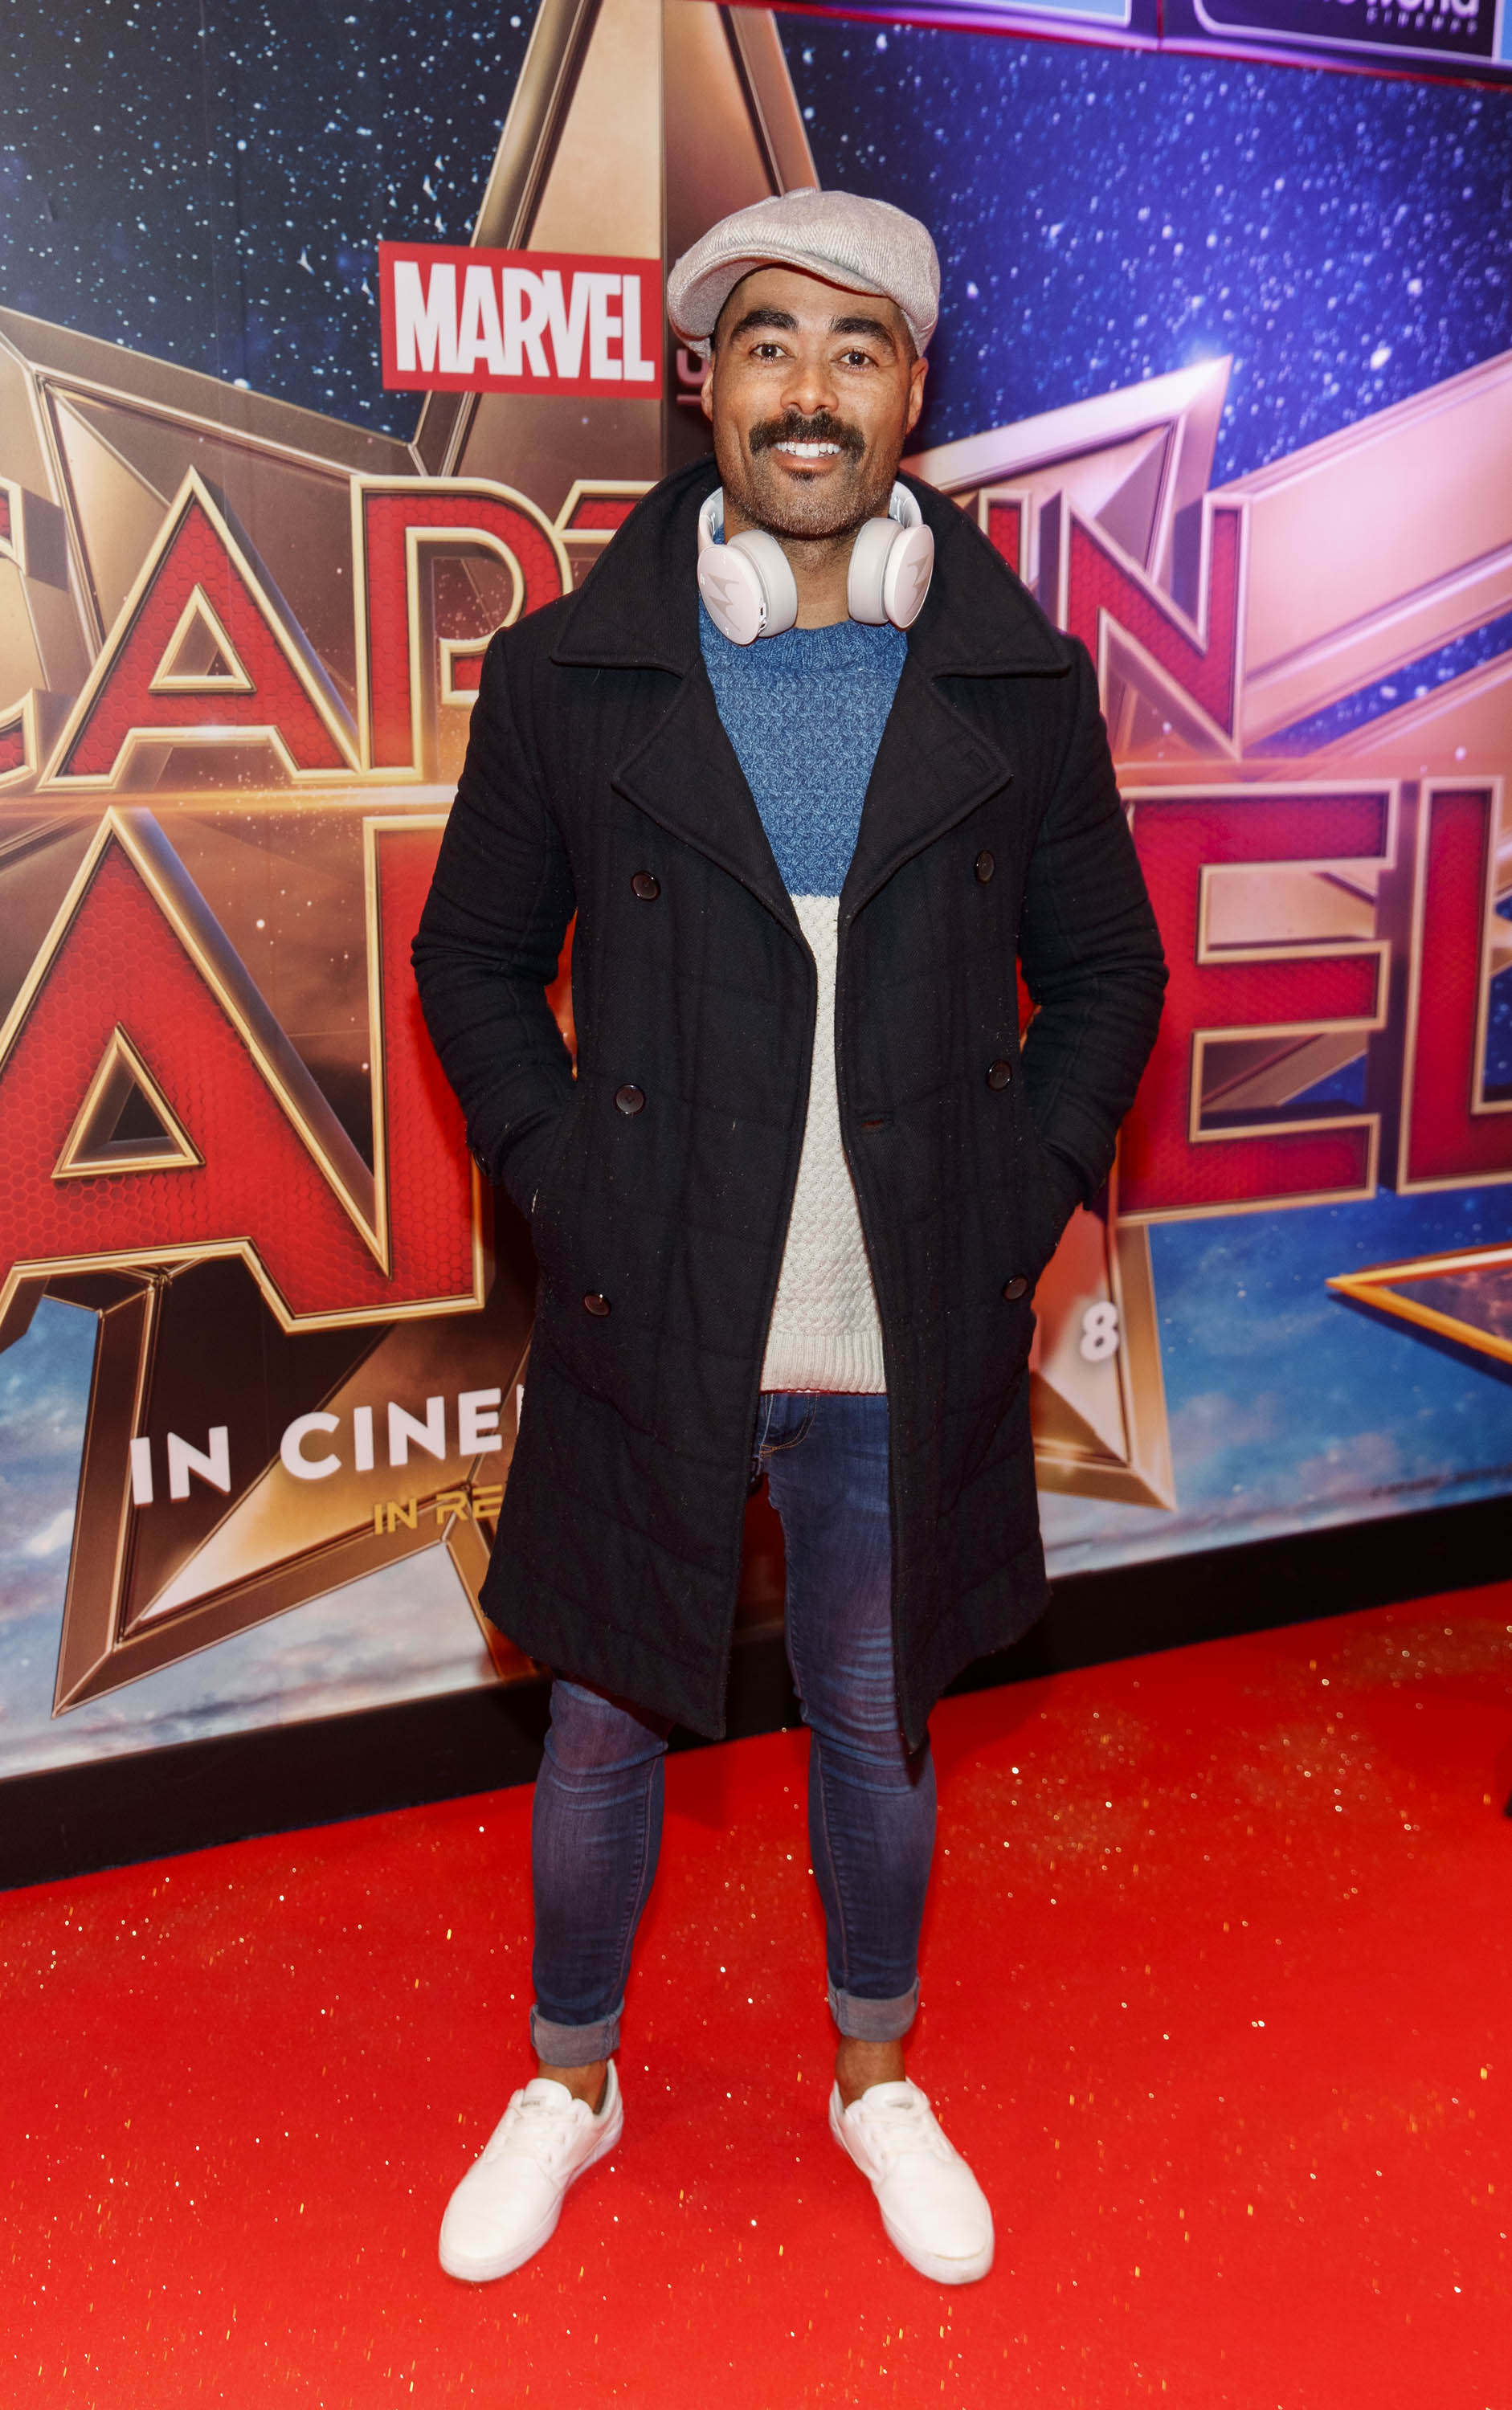 Luke Thomas pictured at a special preview screening of CAPTAIN MARVEL in Cineworld Dublin. Picture by: Andres Poveda